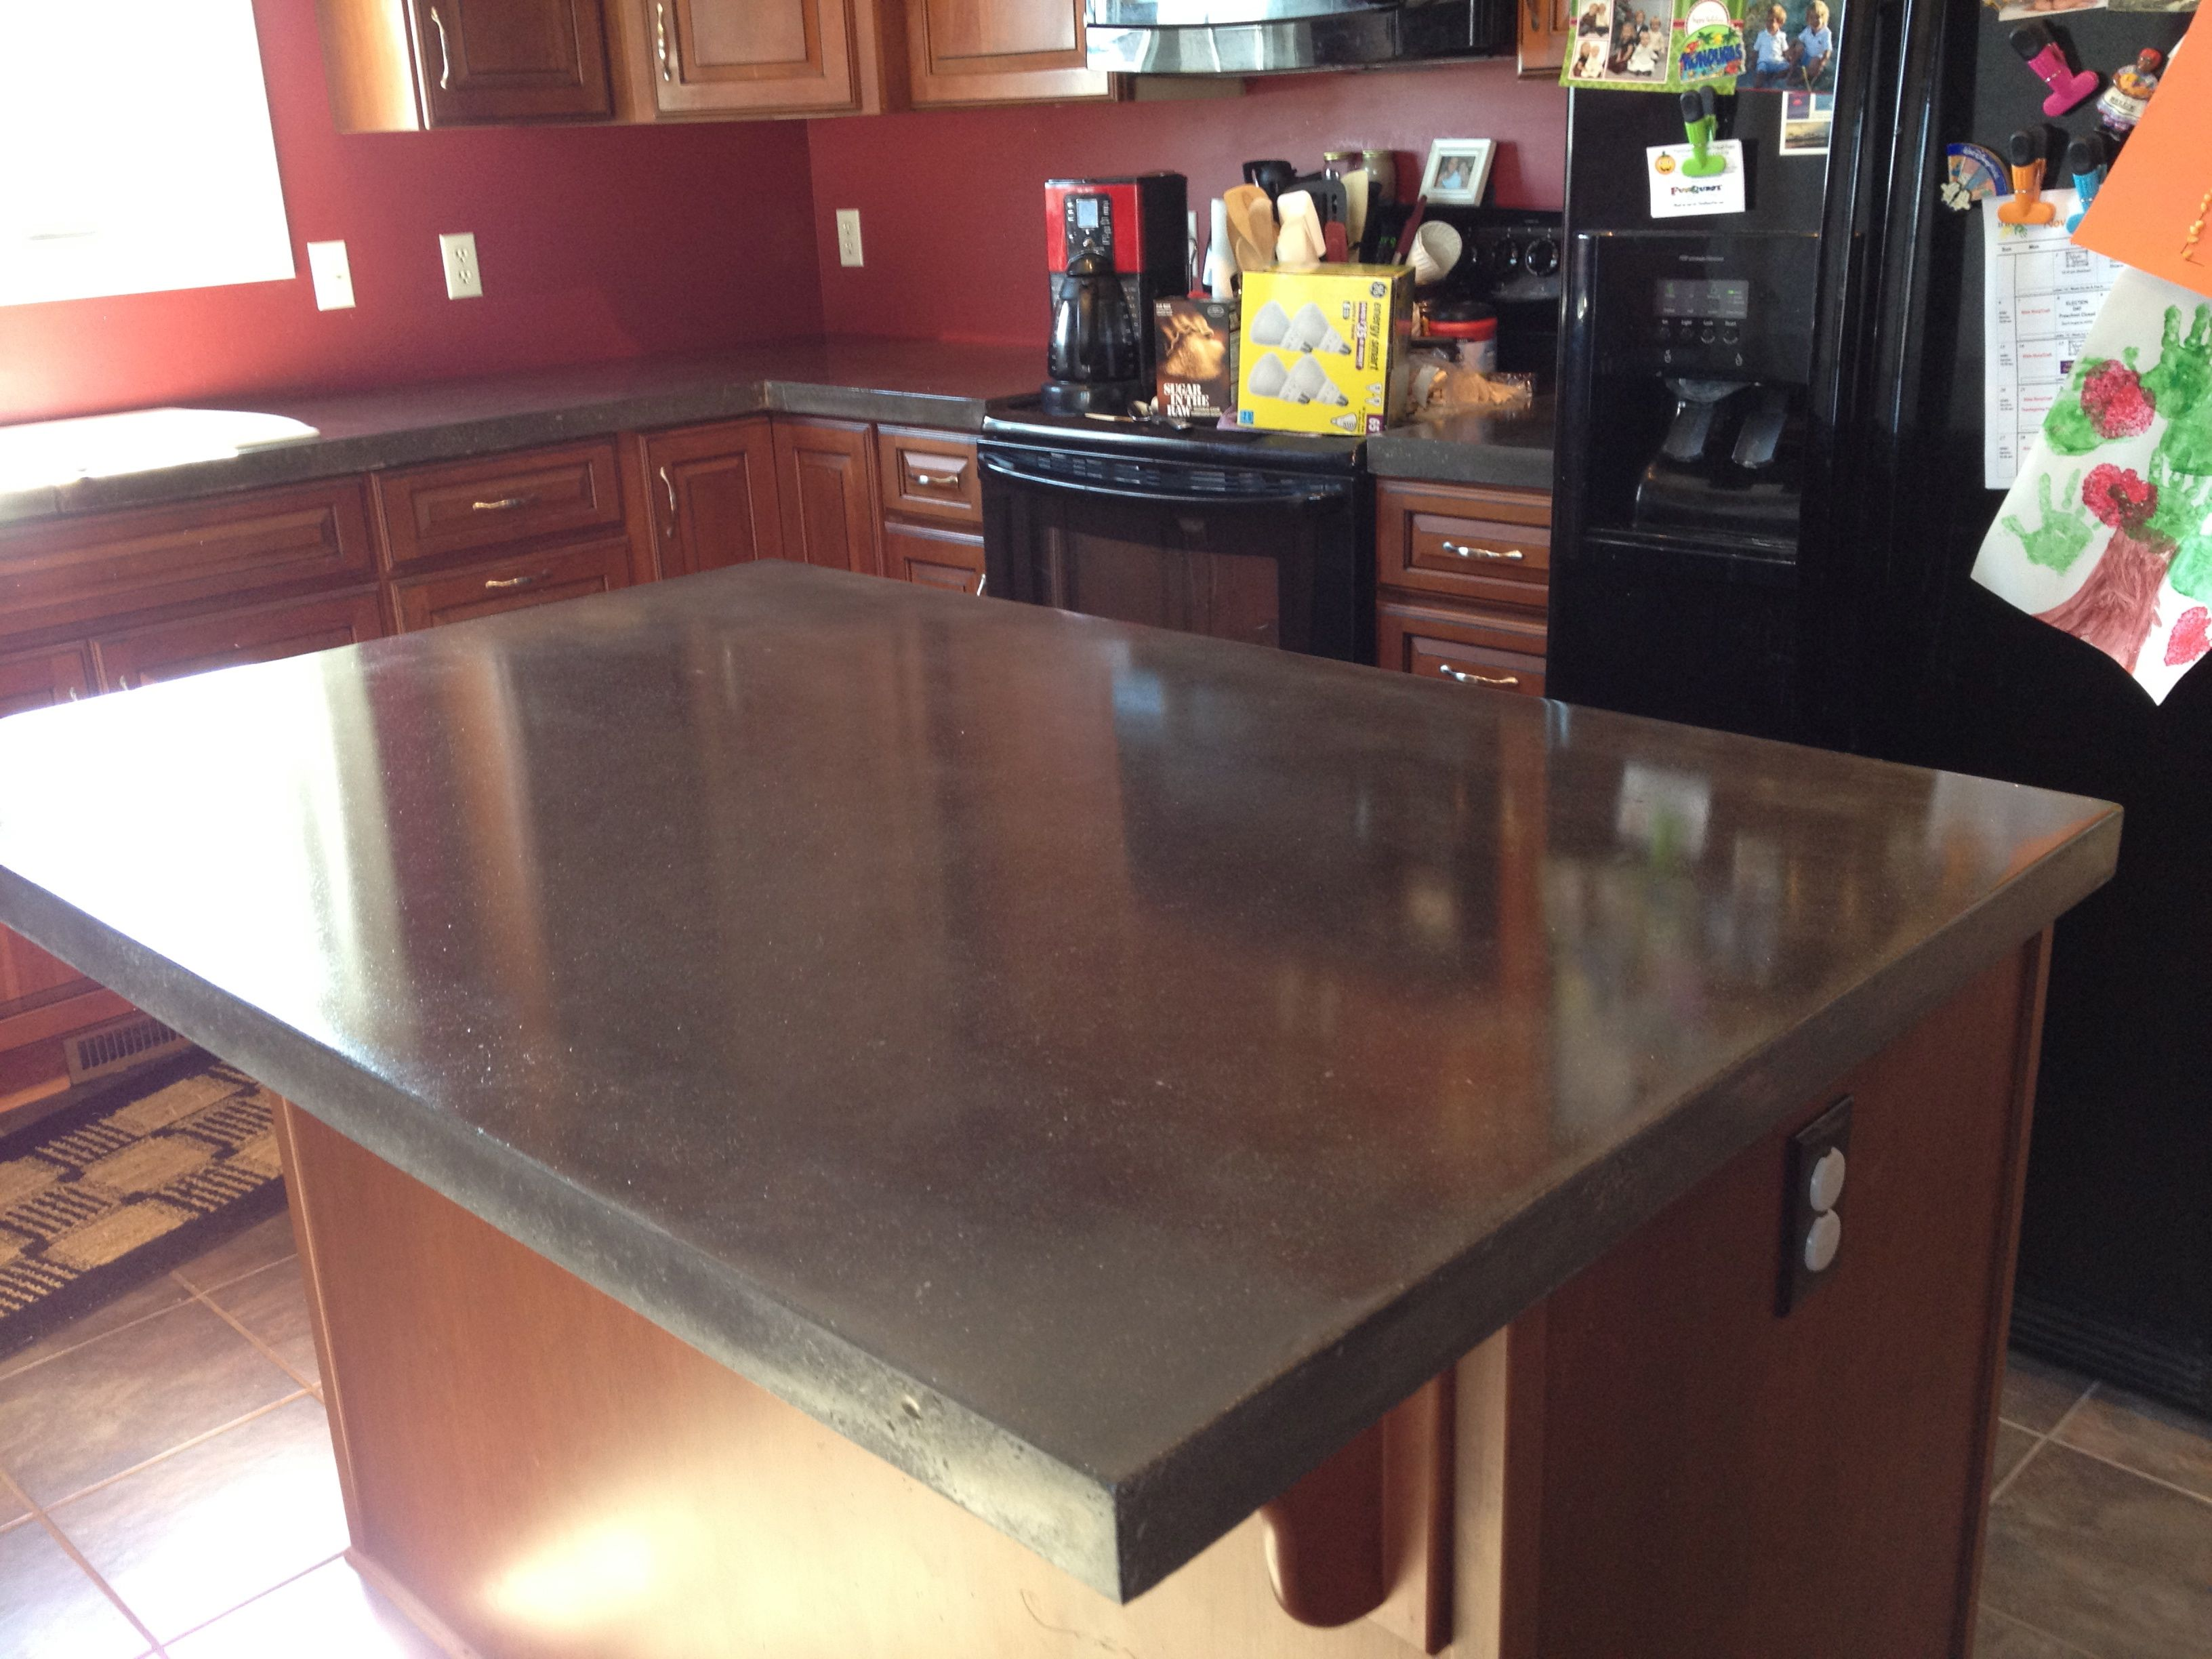 bar picture new jersey countertops countertop design of concrete luxury sinks wet